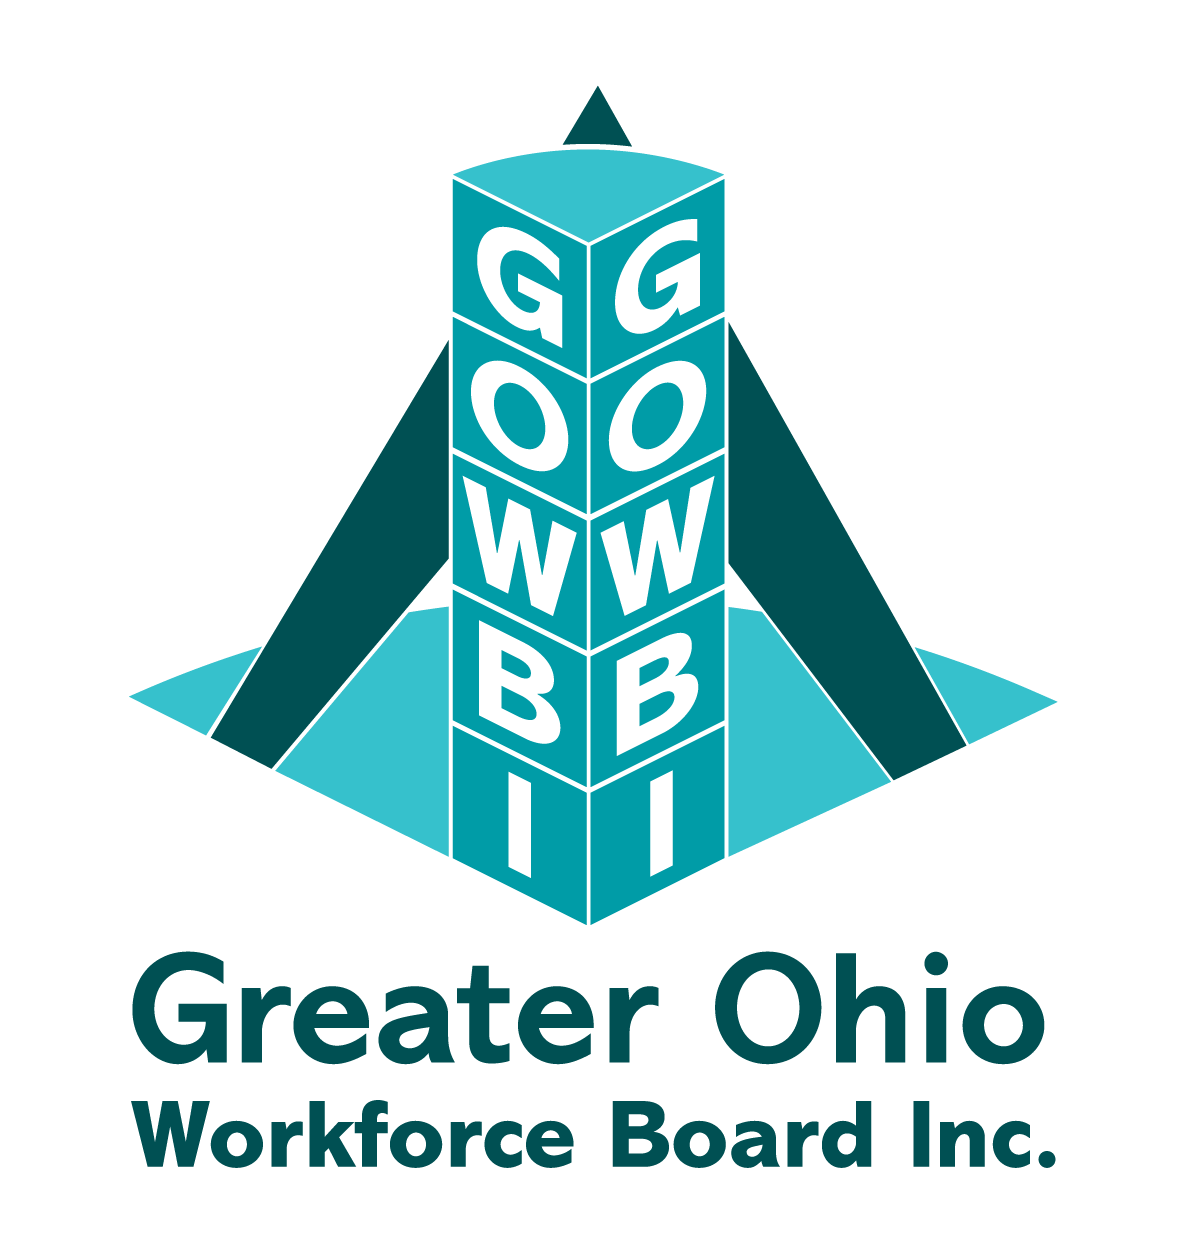 Greater Ohio Workforce Board